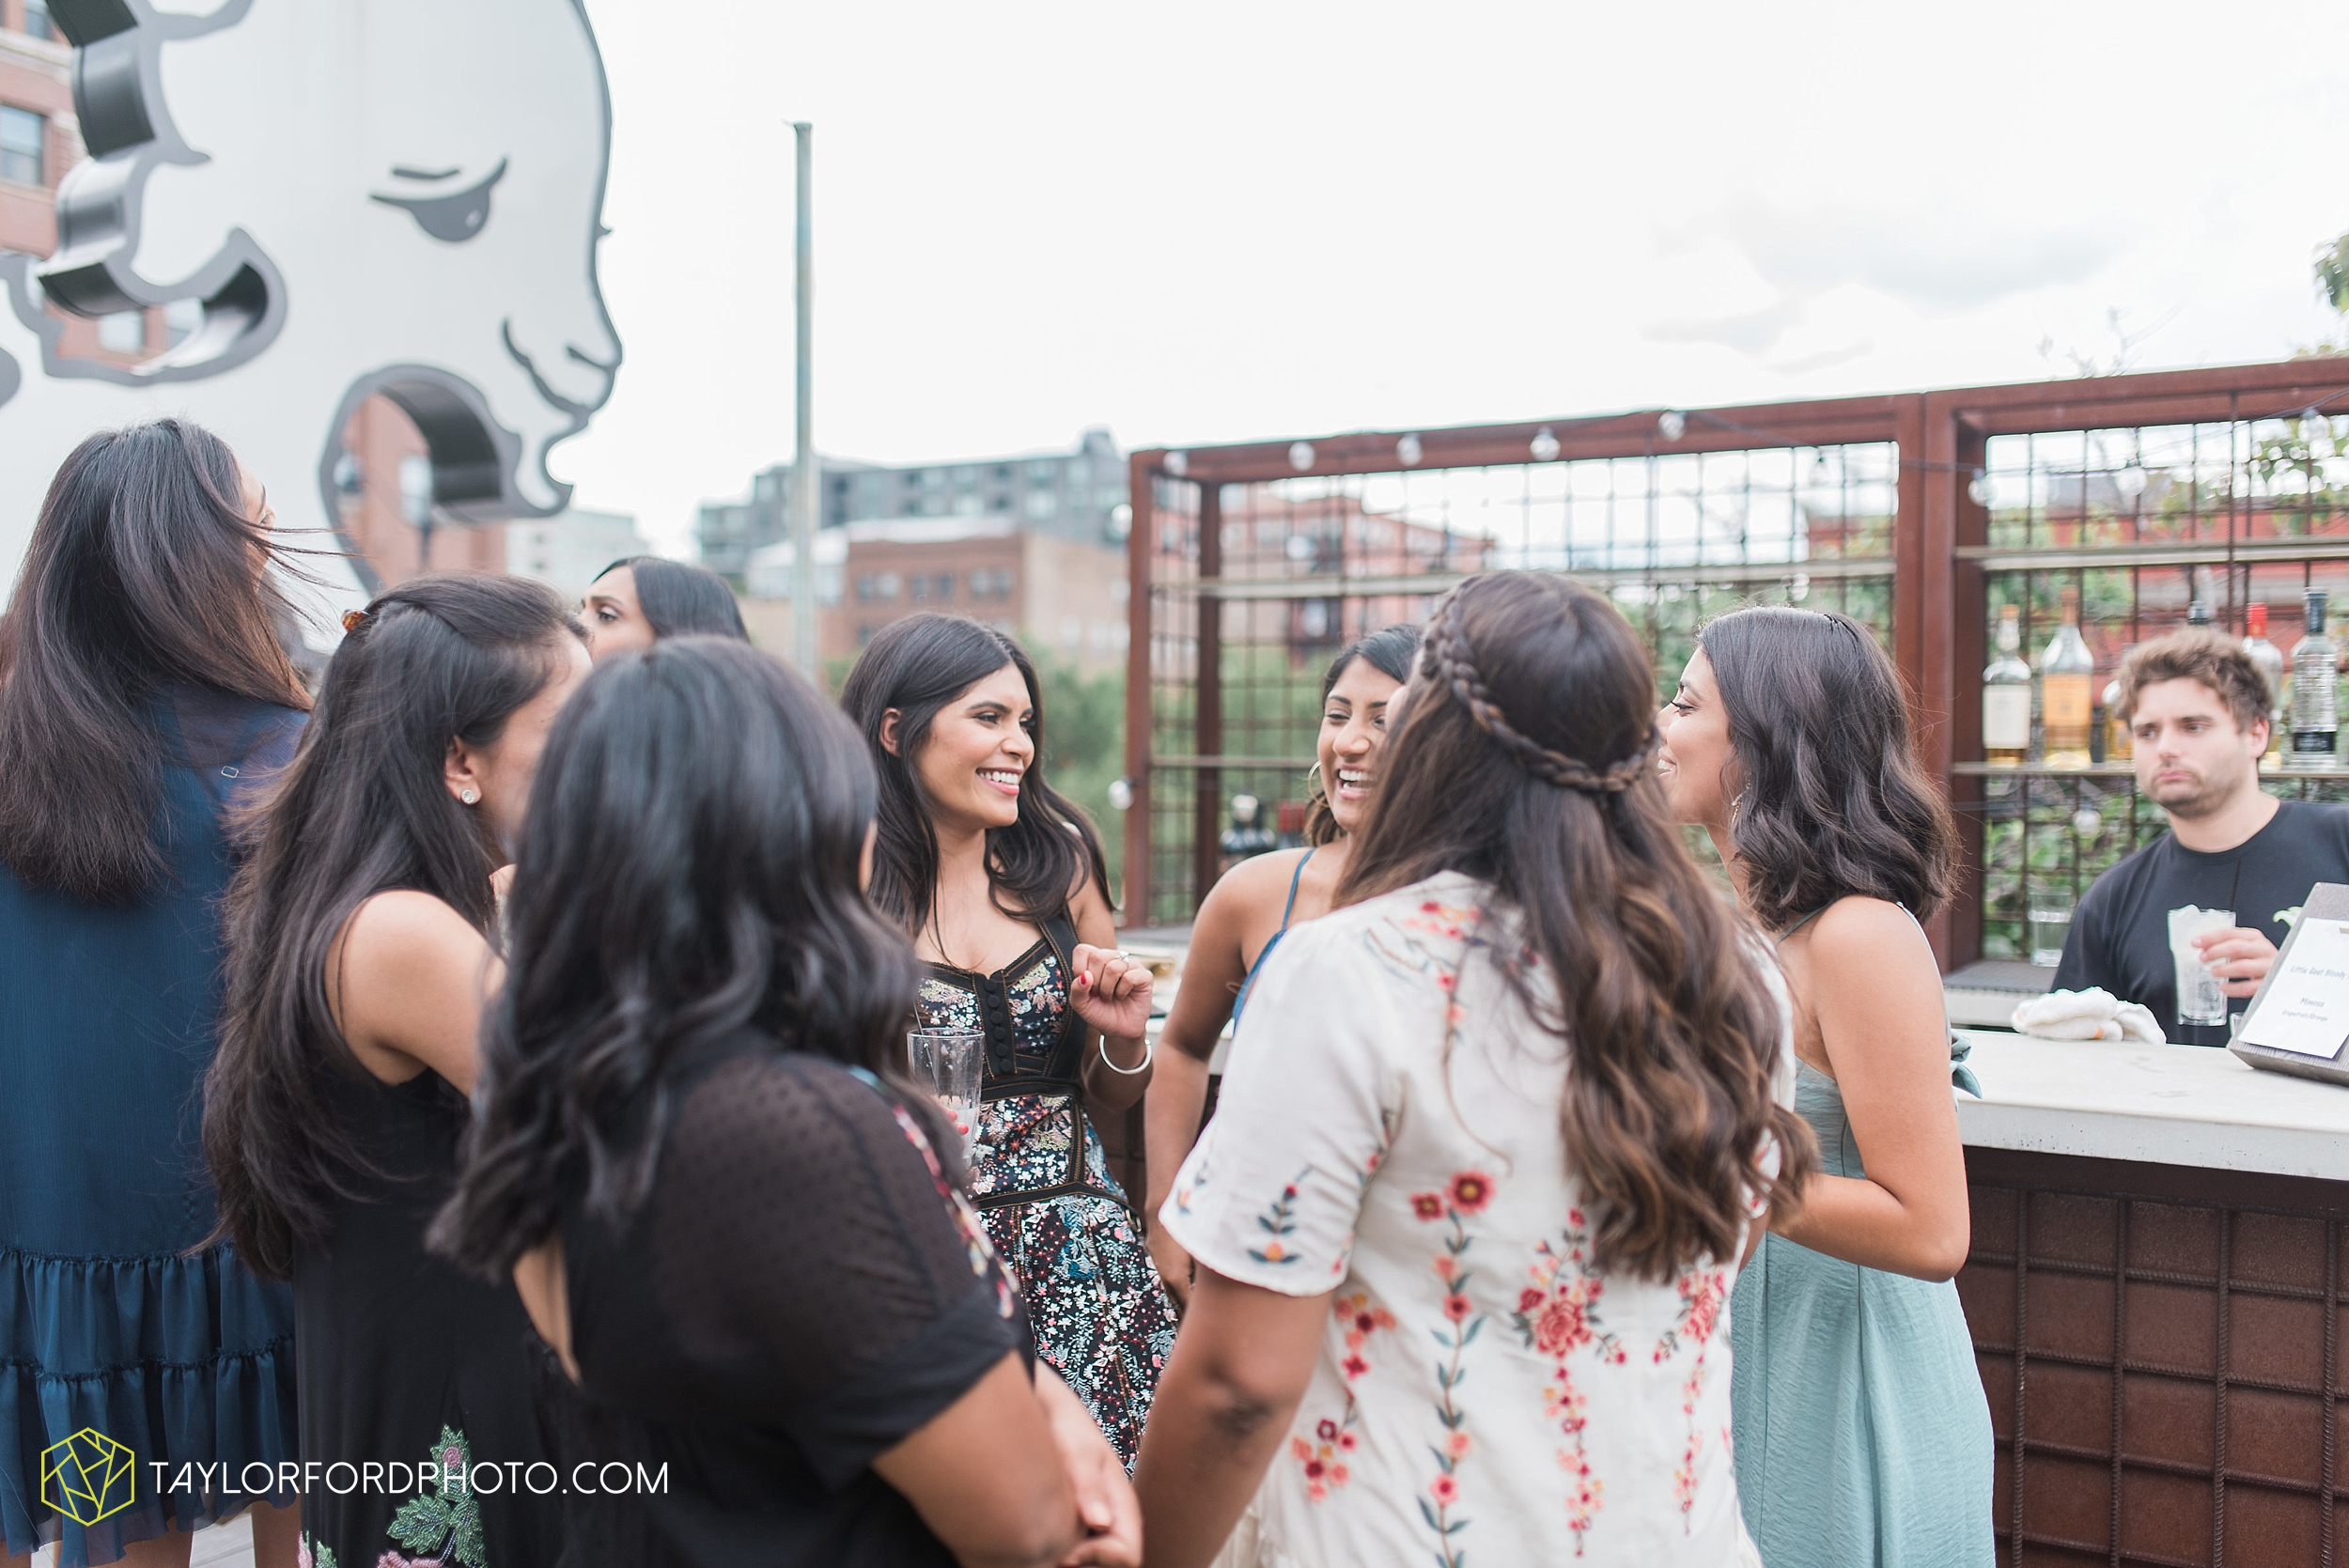 chicago-illinois-bridal-shower-wedding-engagement-photographer-Taylor-Ford-Photography-the-little-goat-diner-rooftop-indian-ceremony_5114.jpg